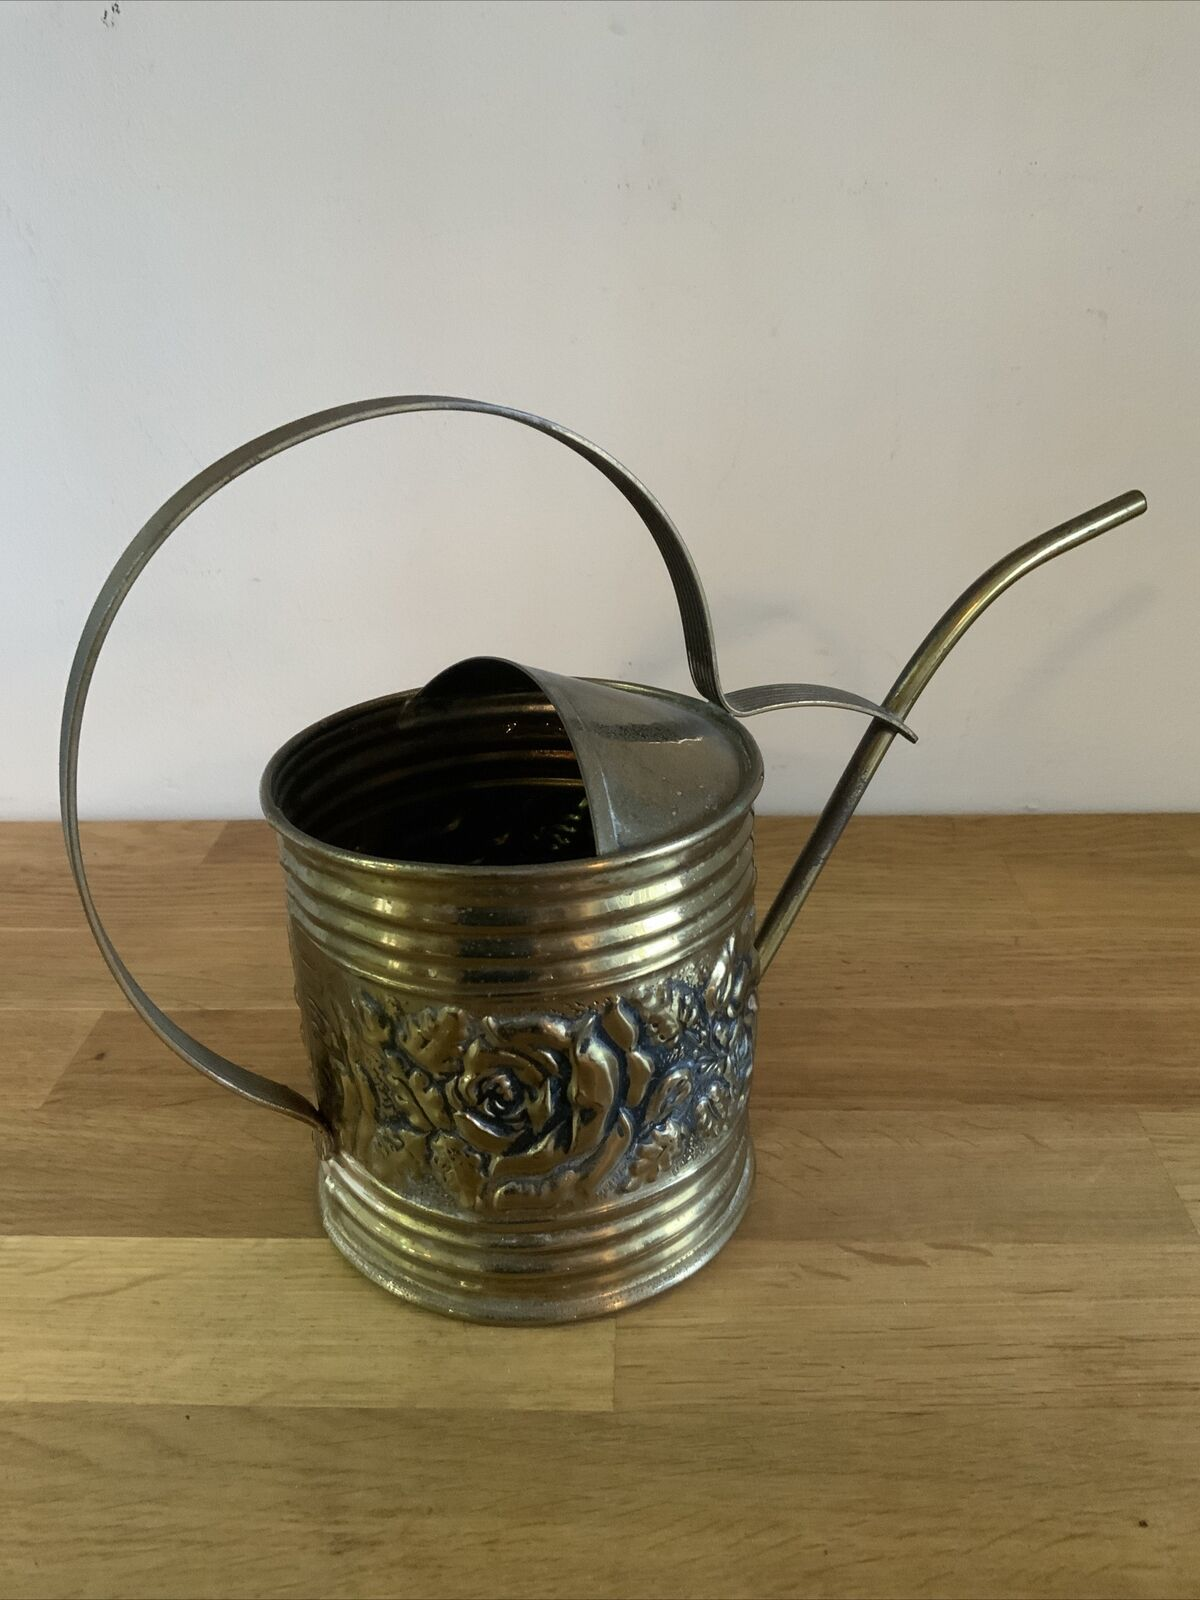 Vintage Brass Watering Can Rose Embossed Slim Spout Curved Indoor Houseplant